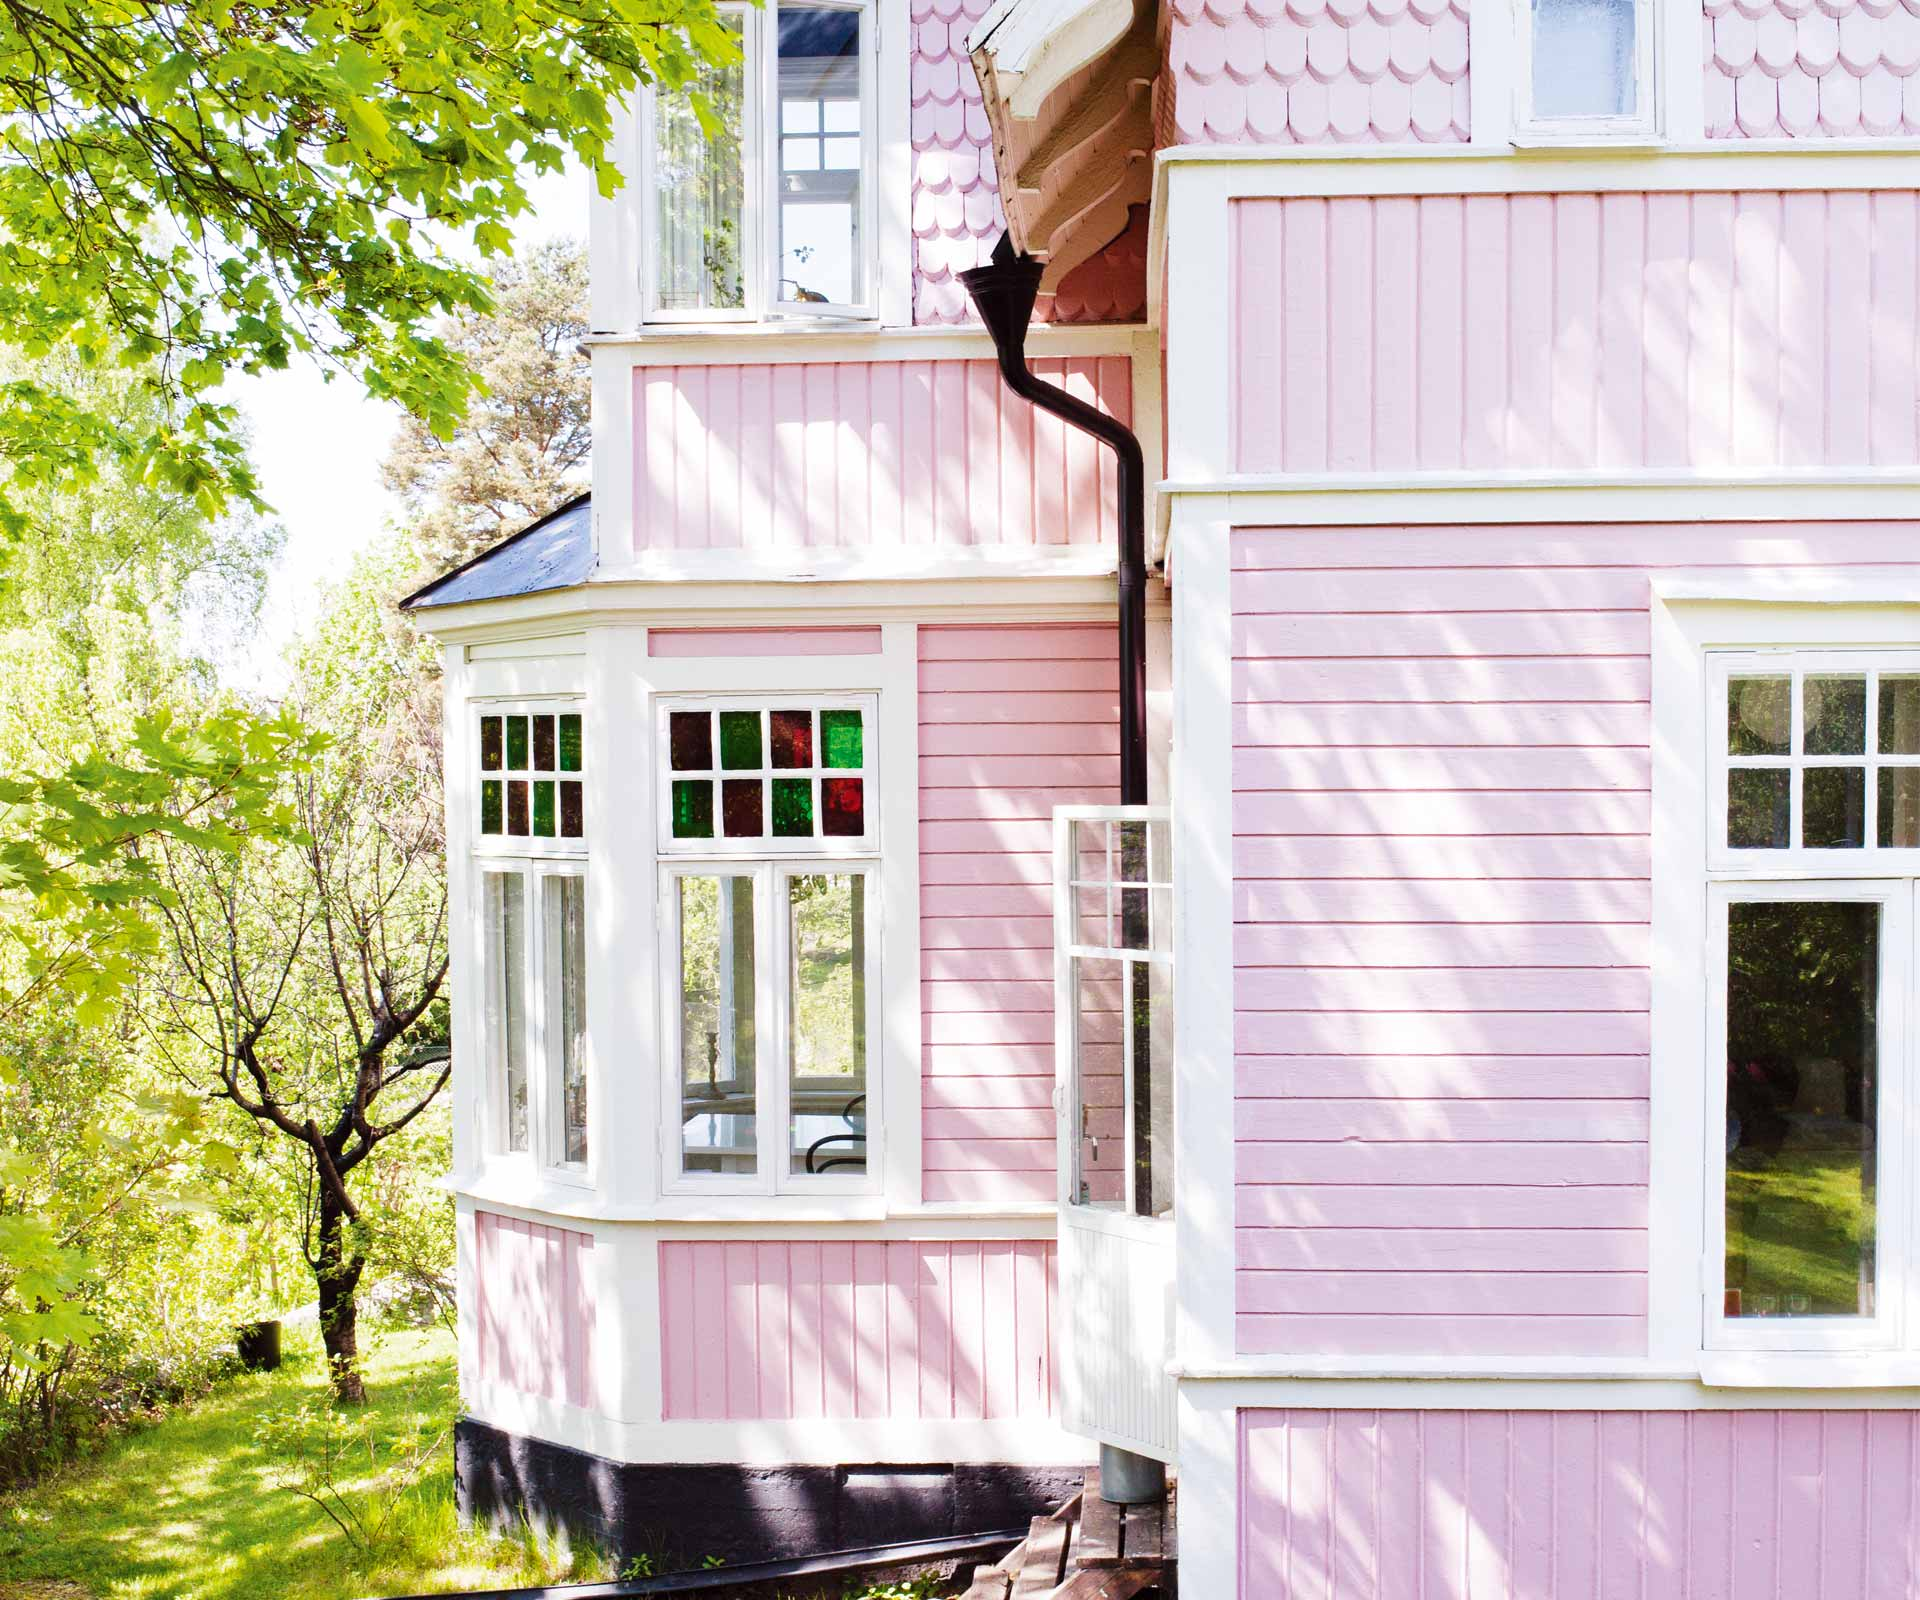 This pink house exterior hides a colourful interior